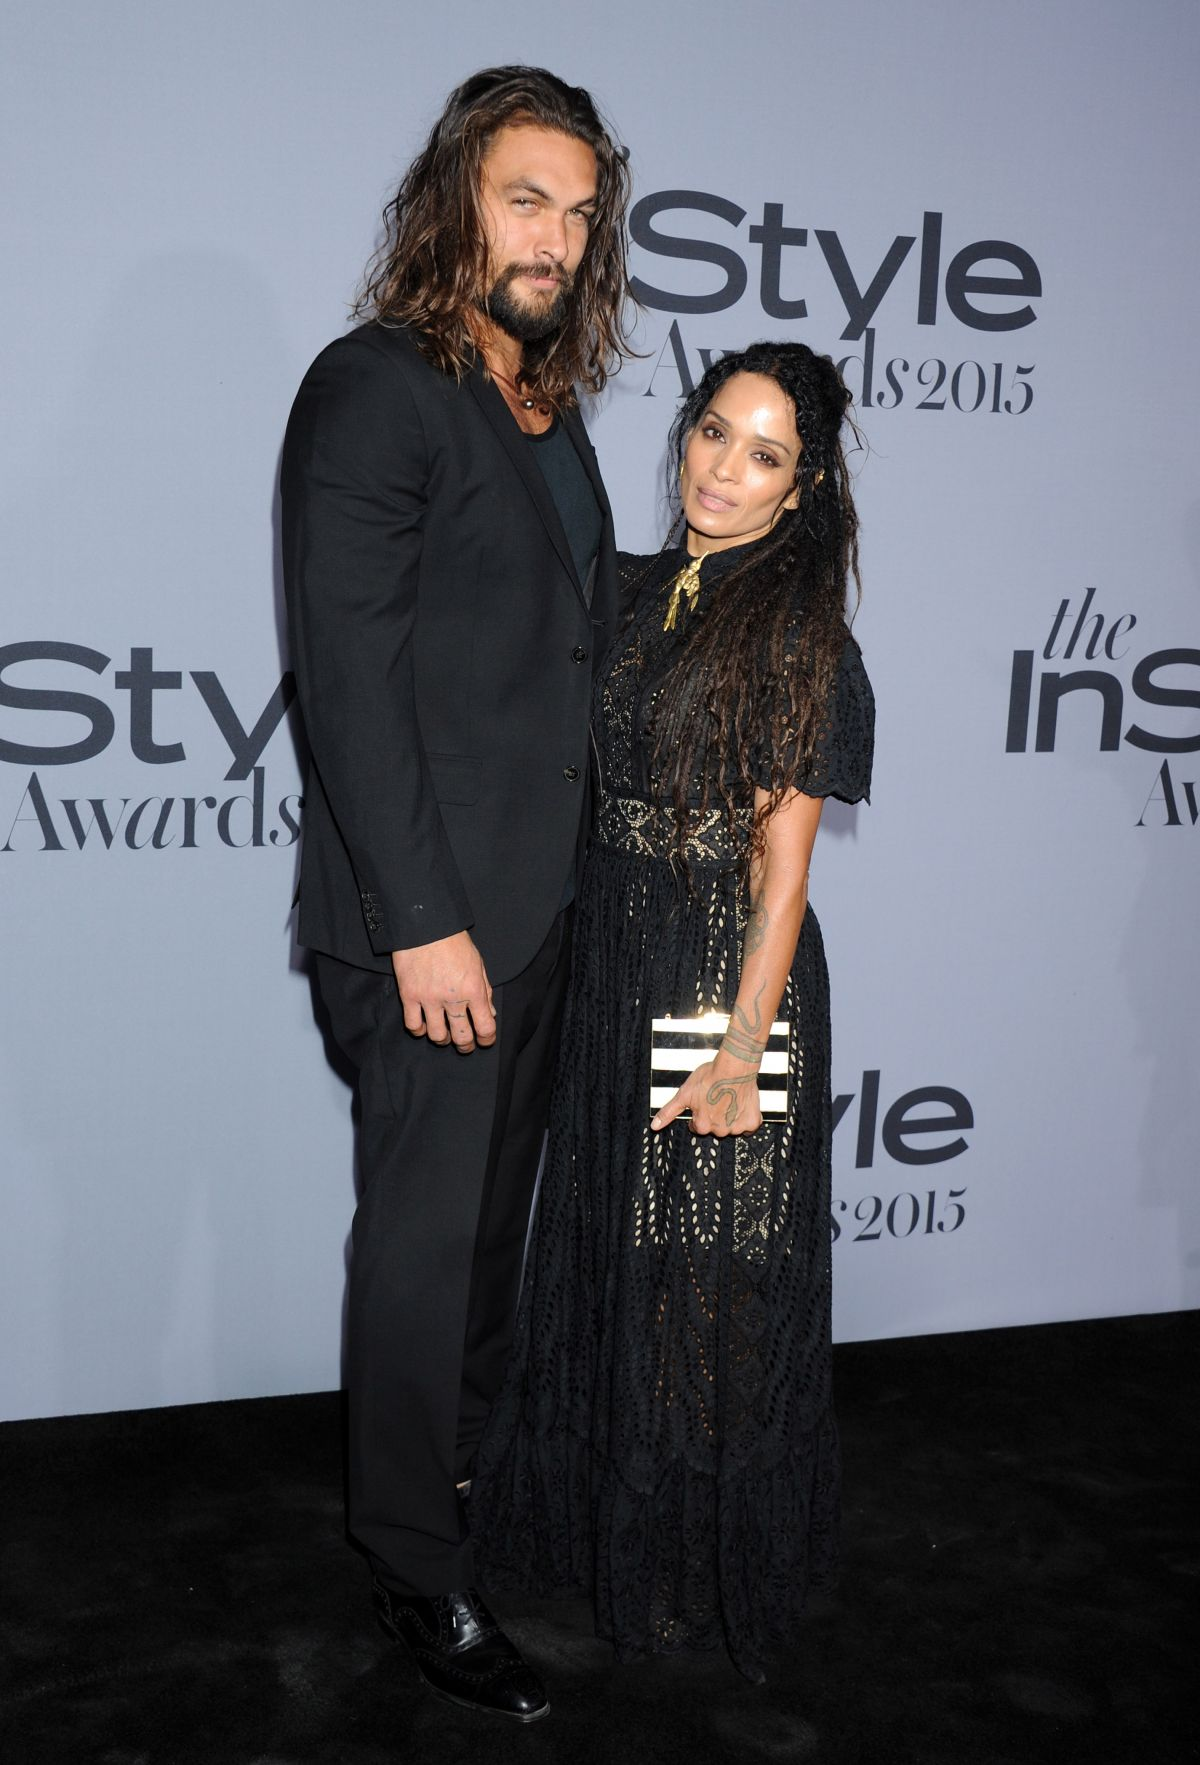 LISA BONET at InStyle Awards 2015 in Los Angeles 10/26/2015